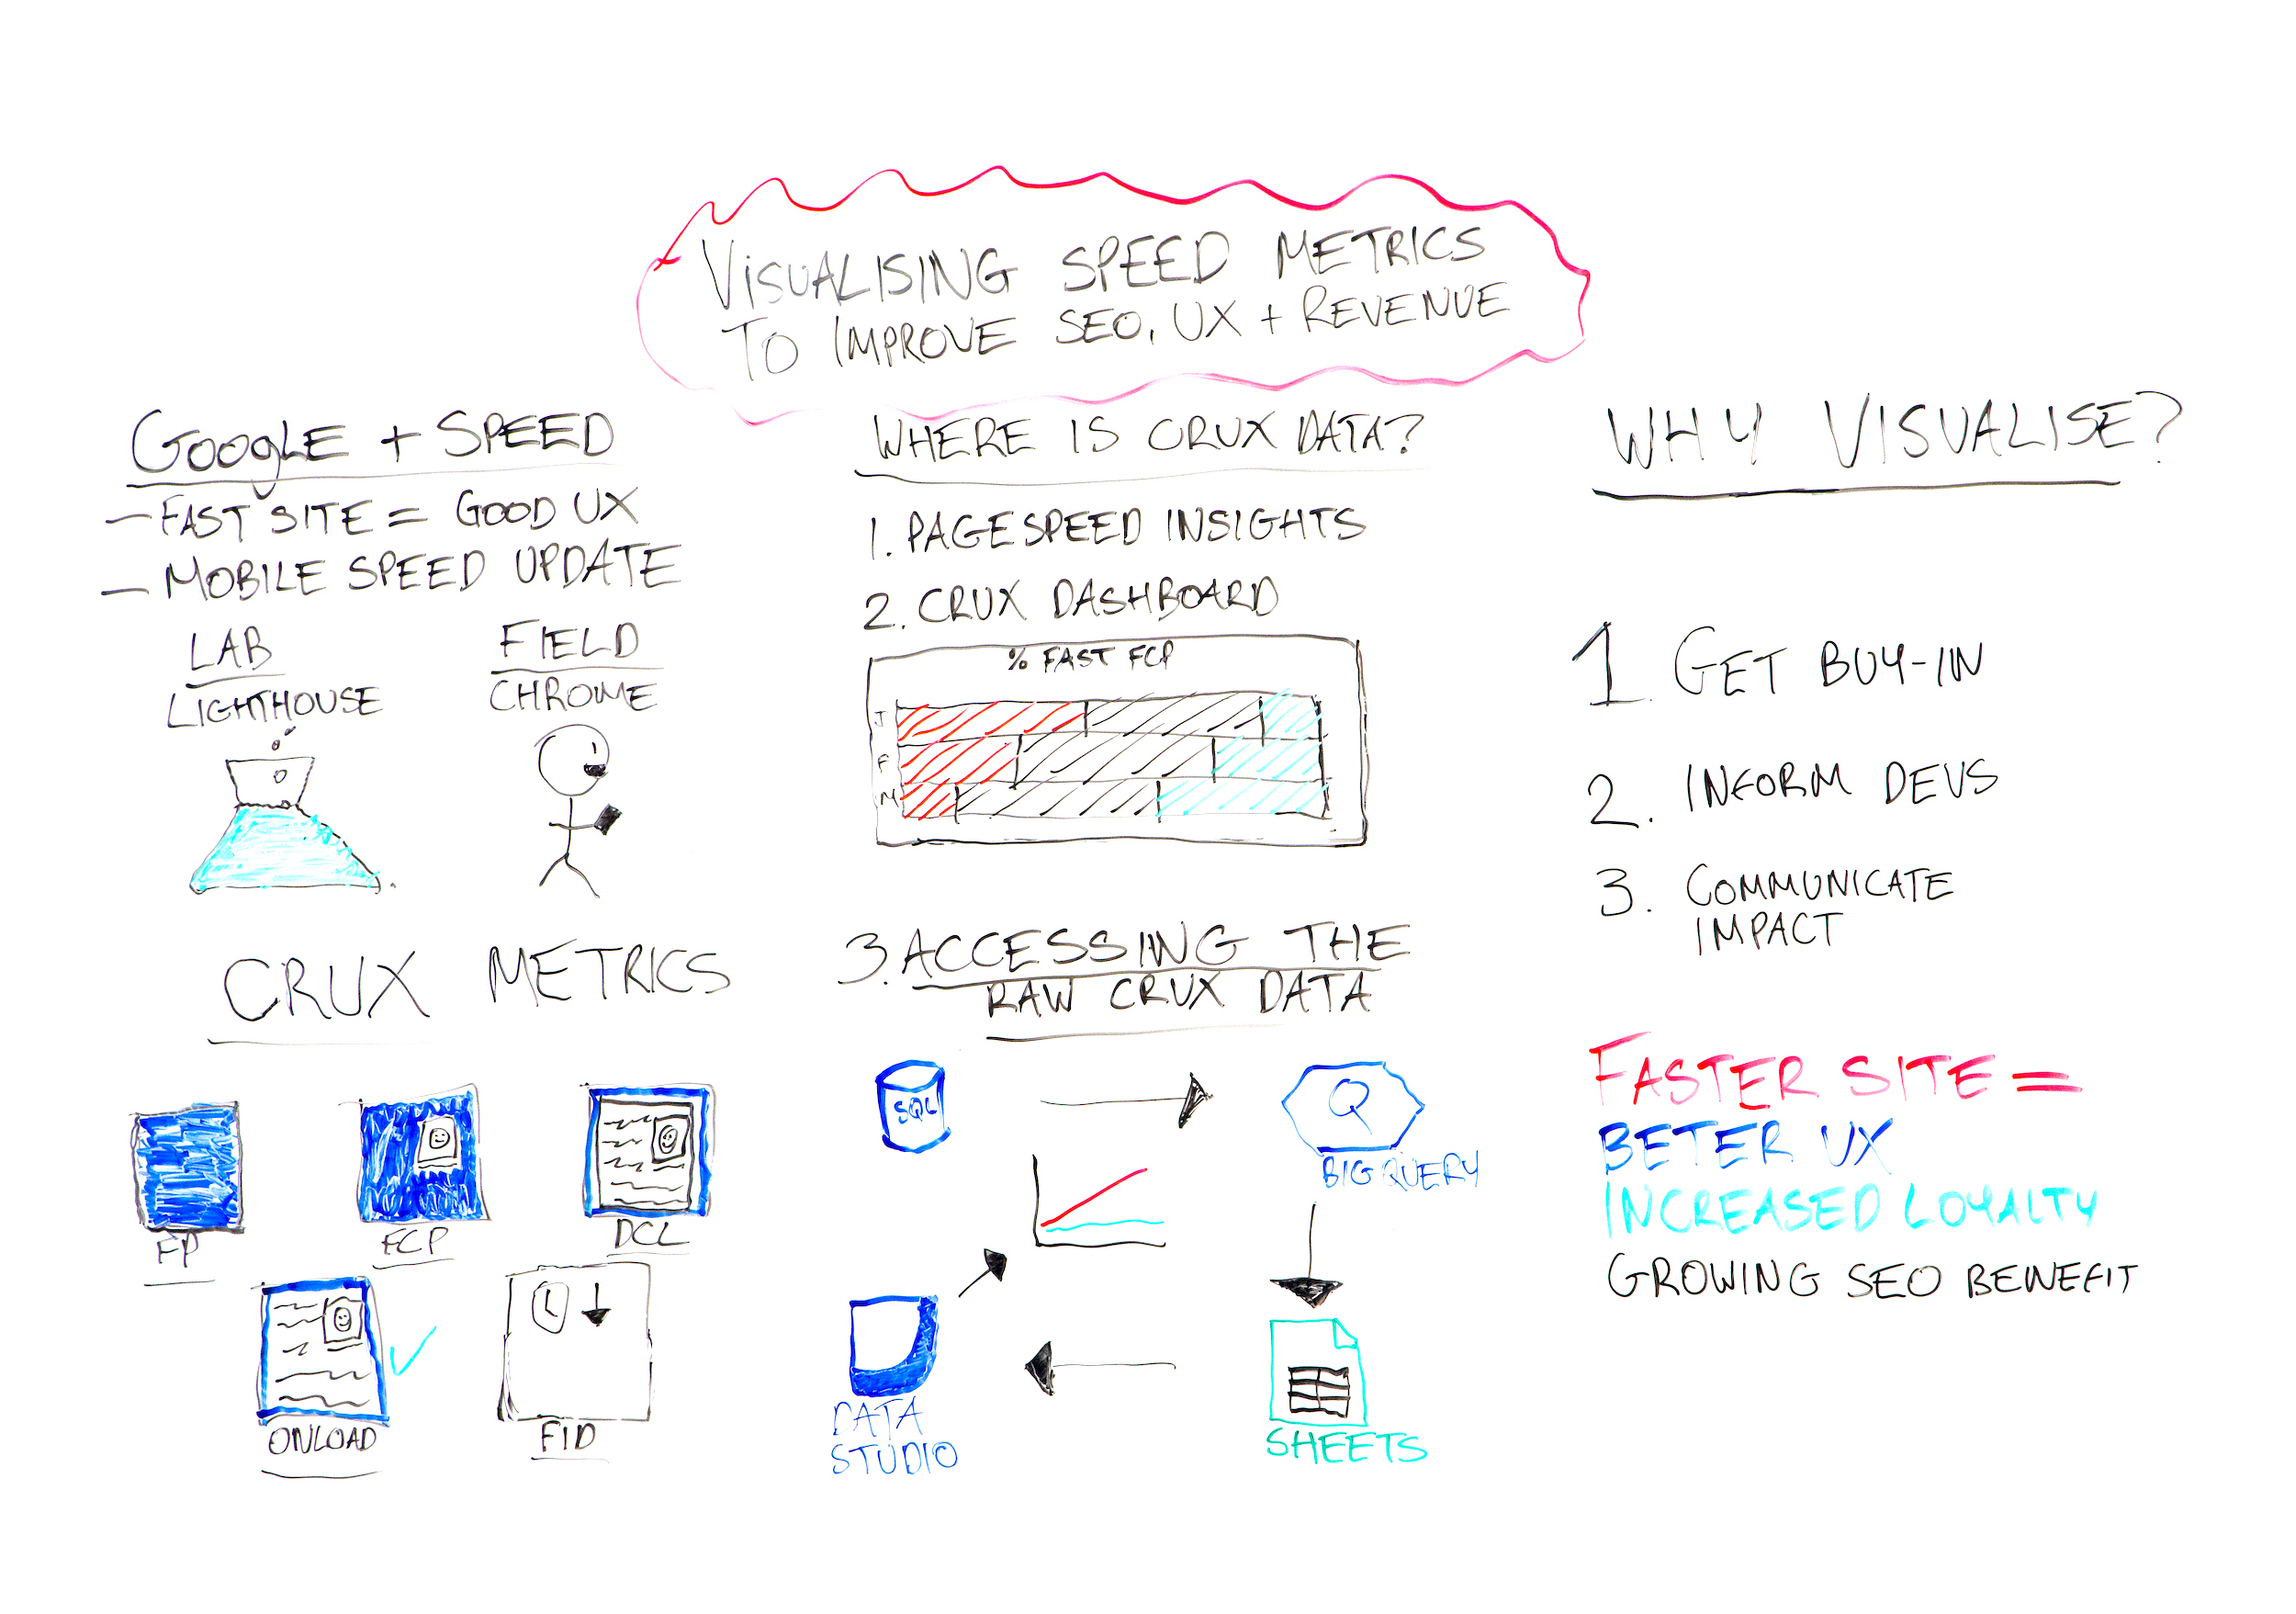 Visualizing Speed Metrics to Improve SEO, UX, &